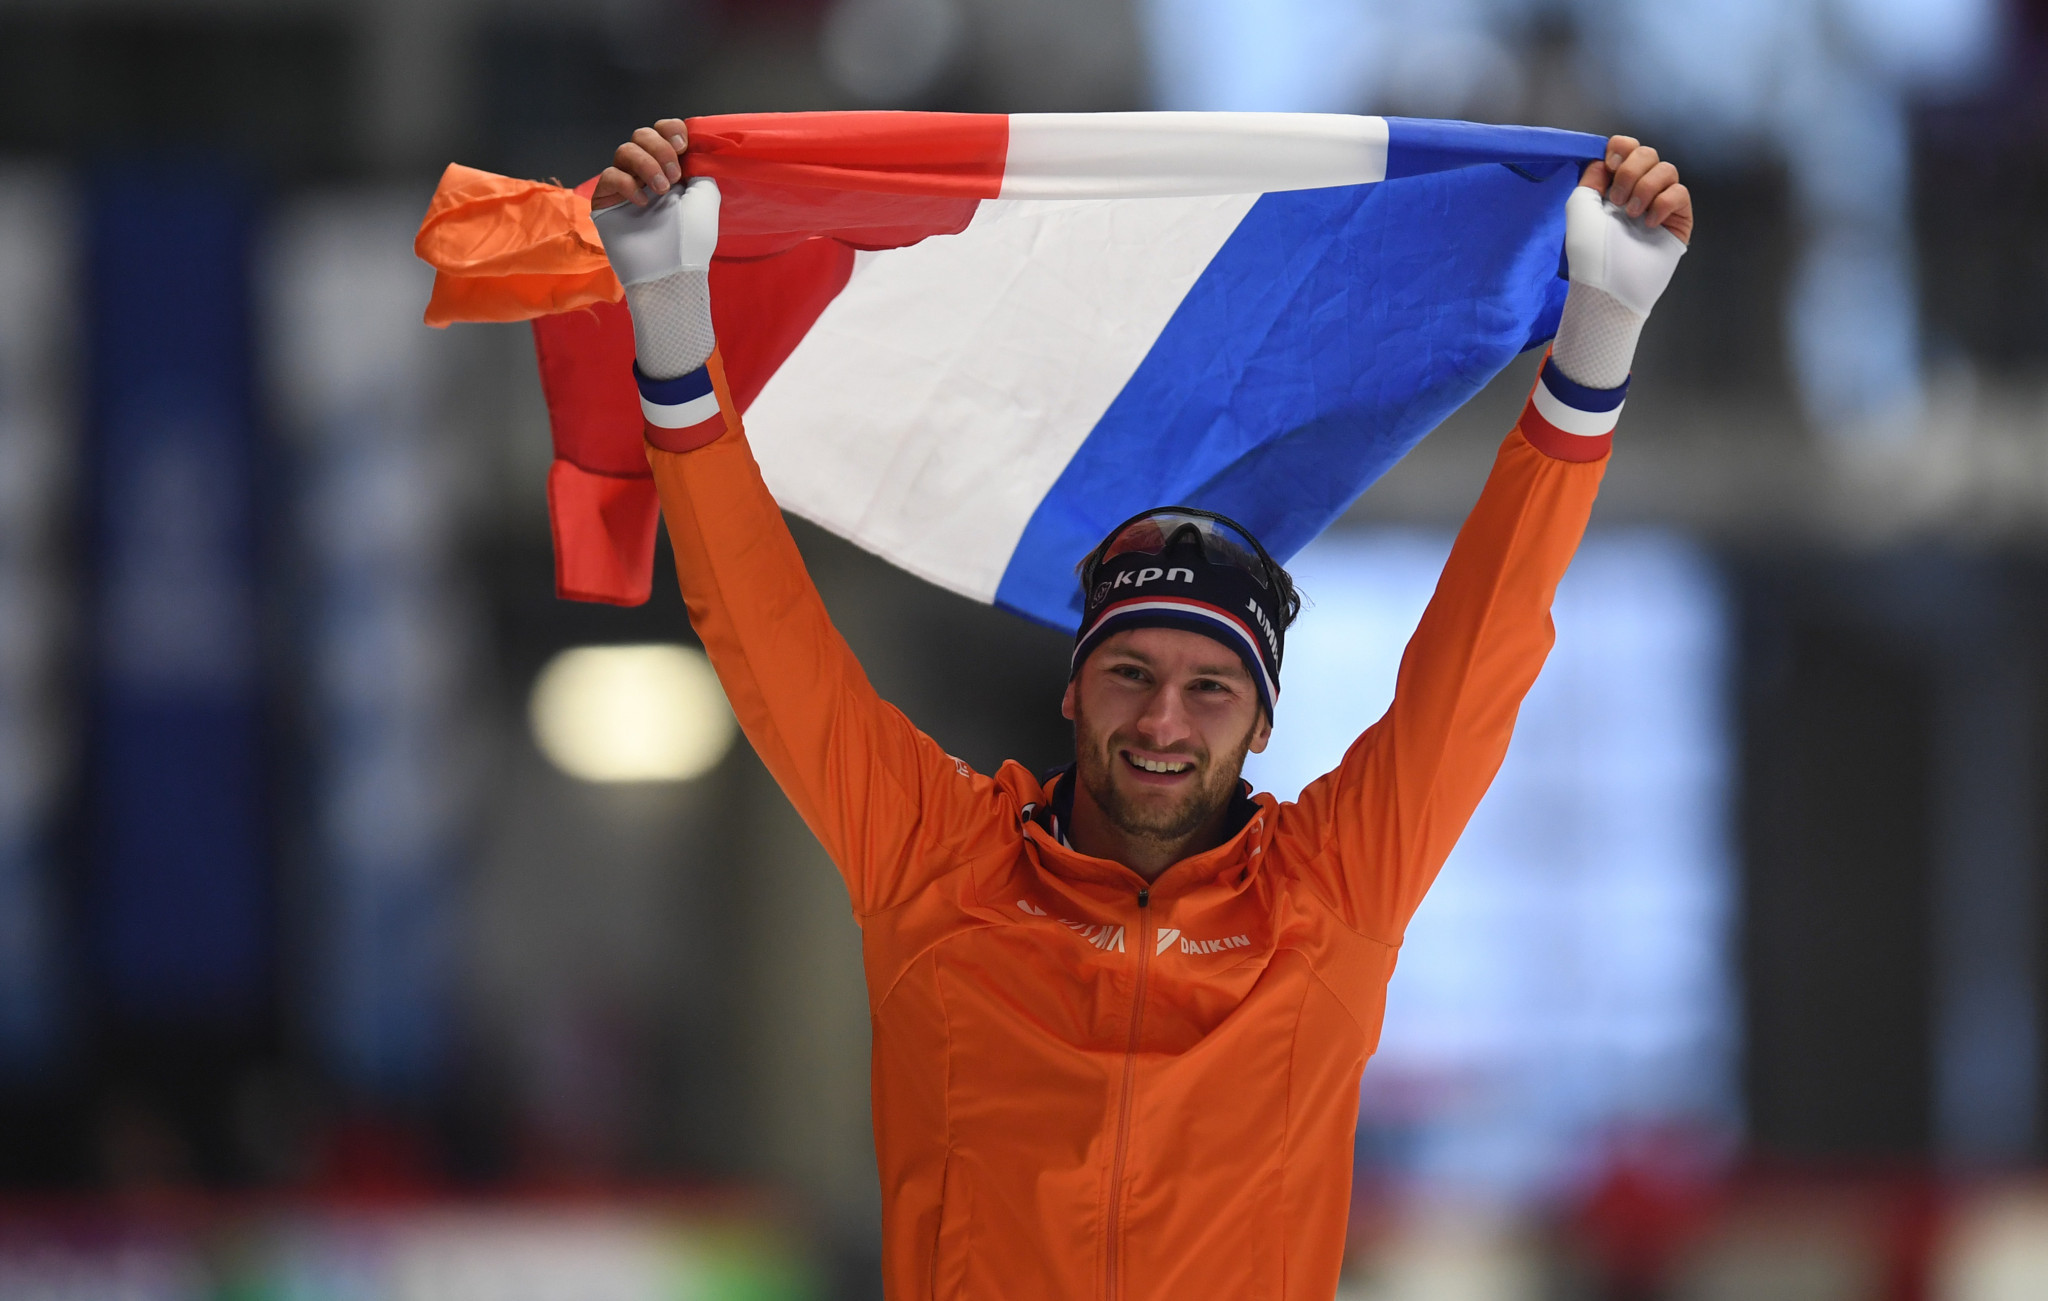 Krol claims 1,000m gold as Dutch dominance continues at ISU Speed Skating World Cup